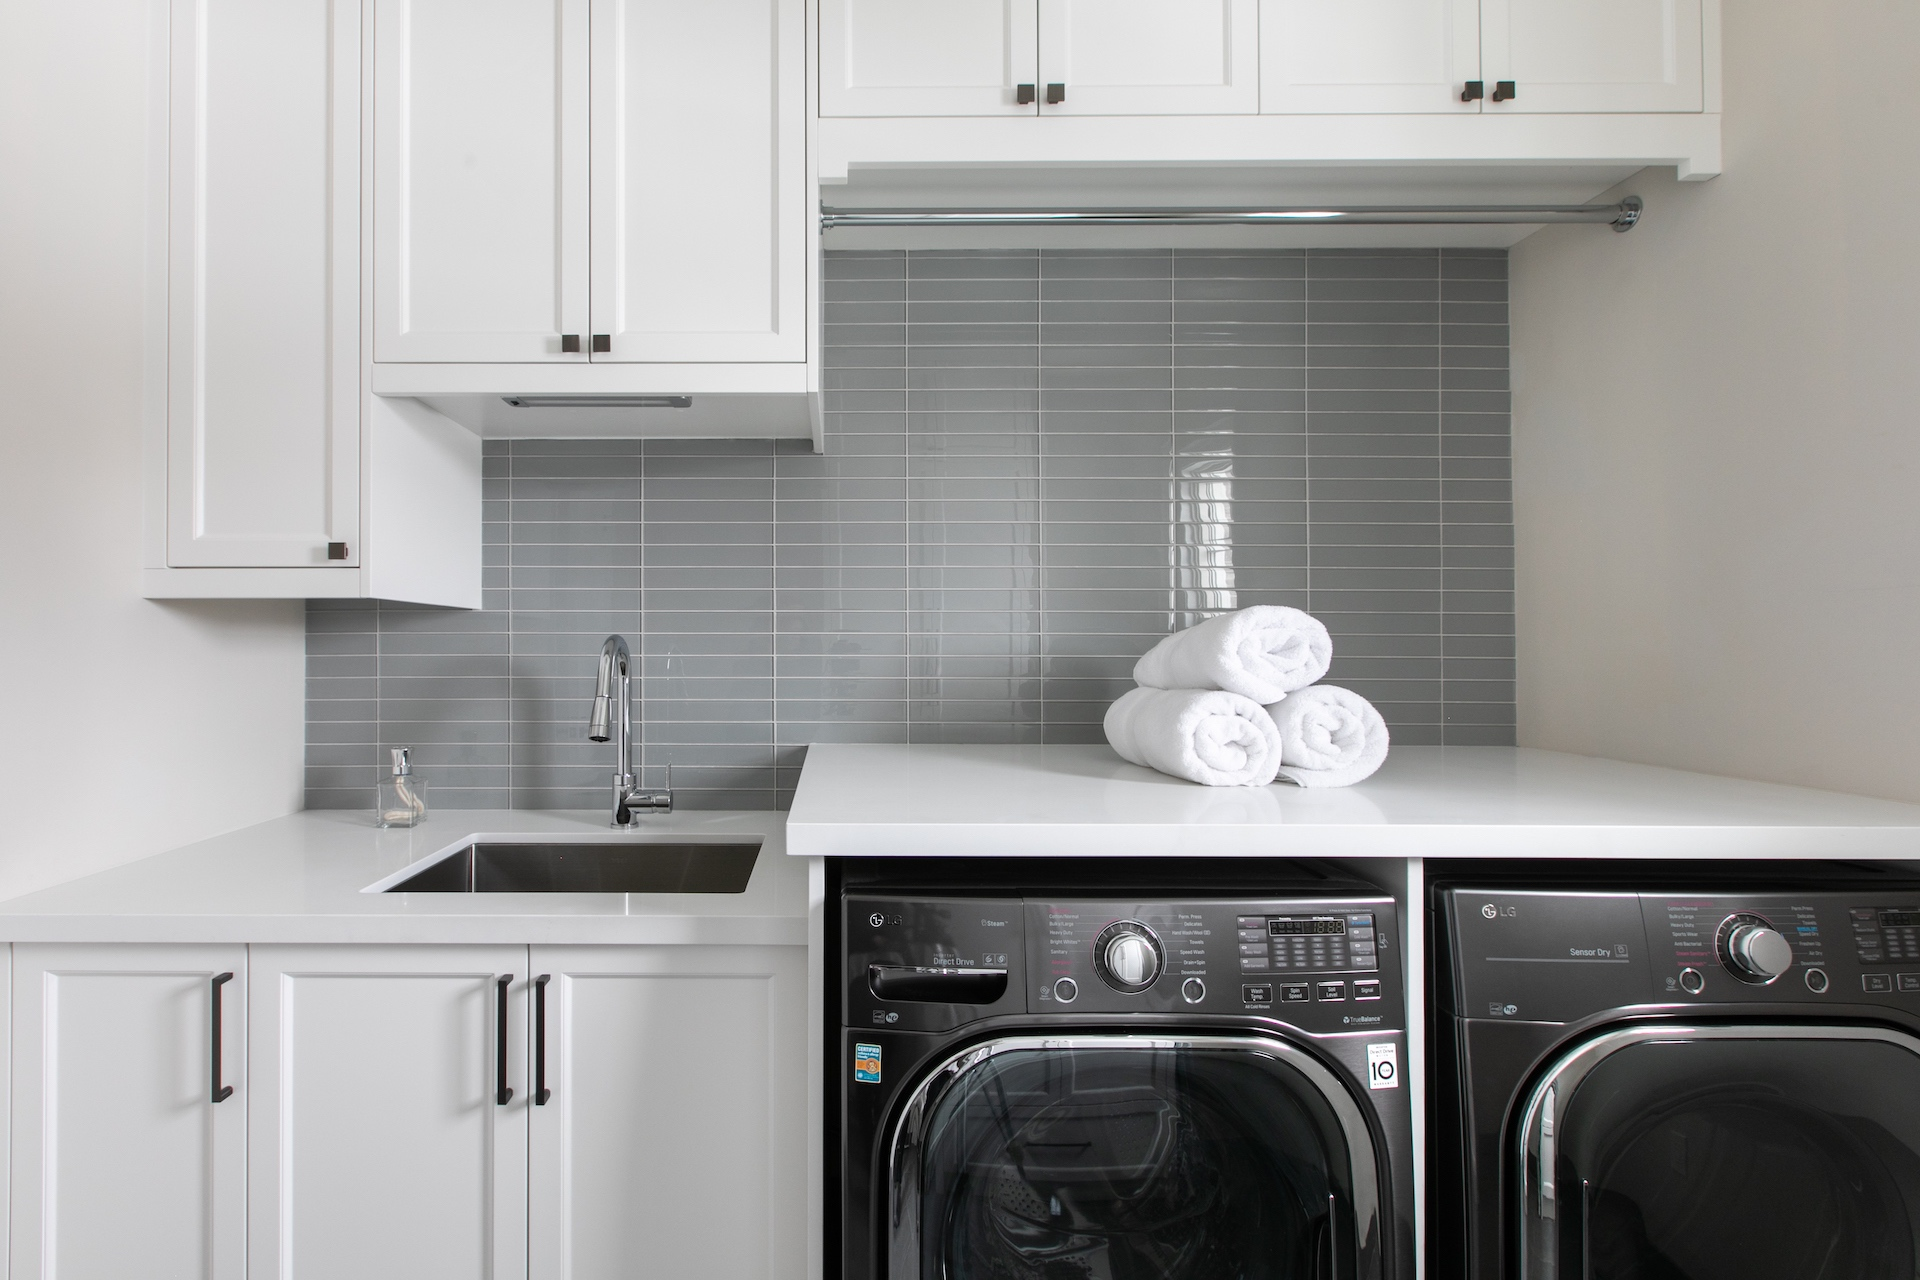 Laundry room cabinets with washer/dryer